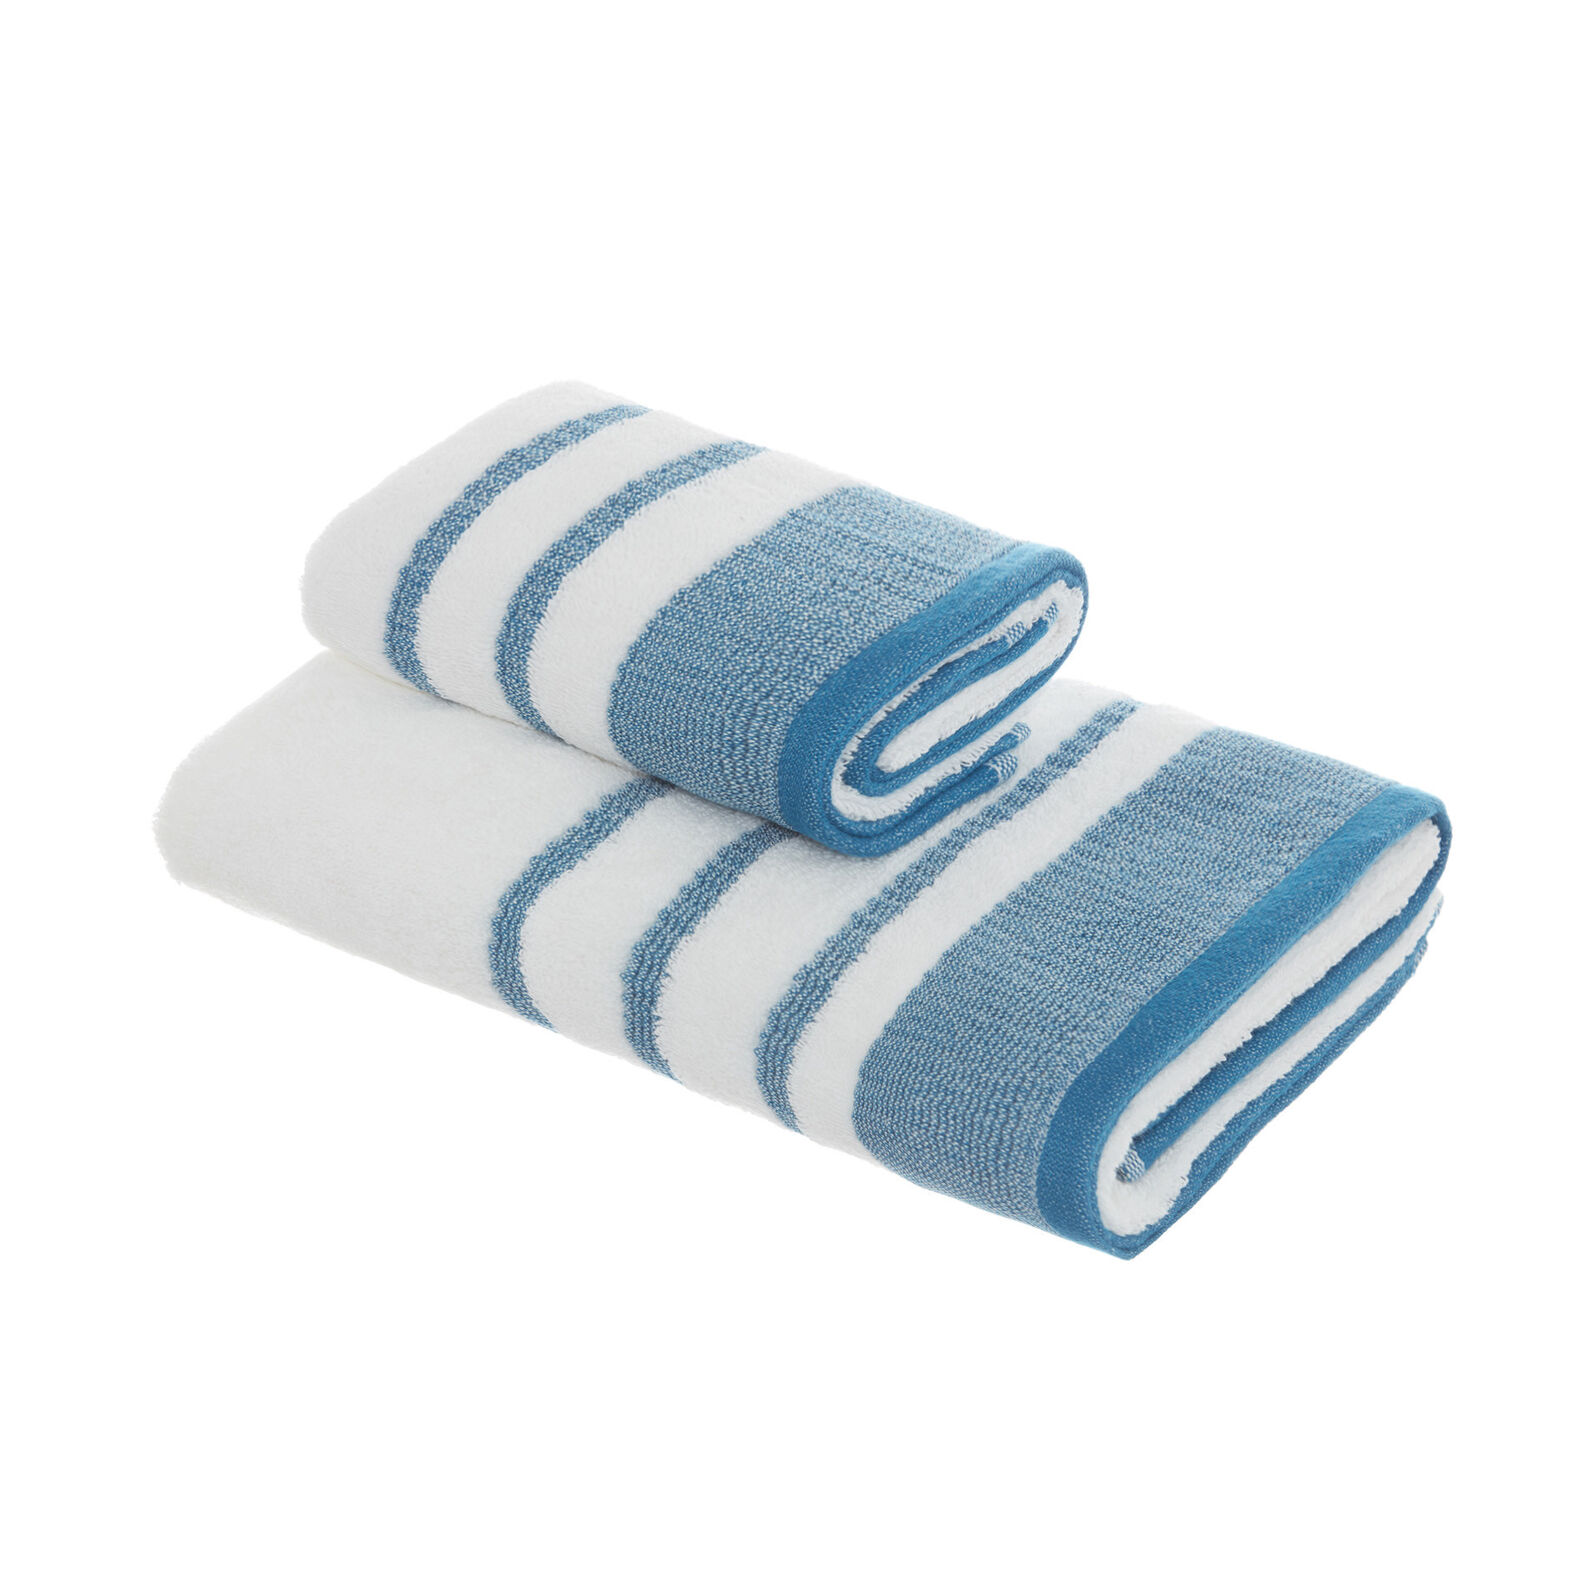 Cotton terry towel with embossed flounce